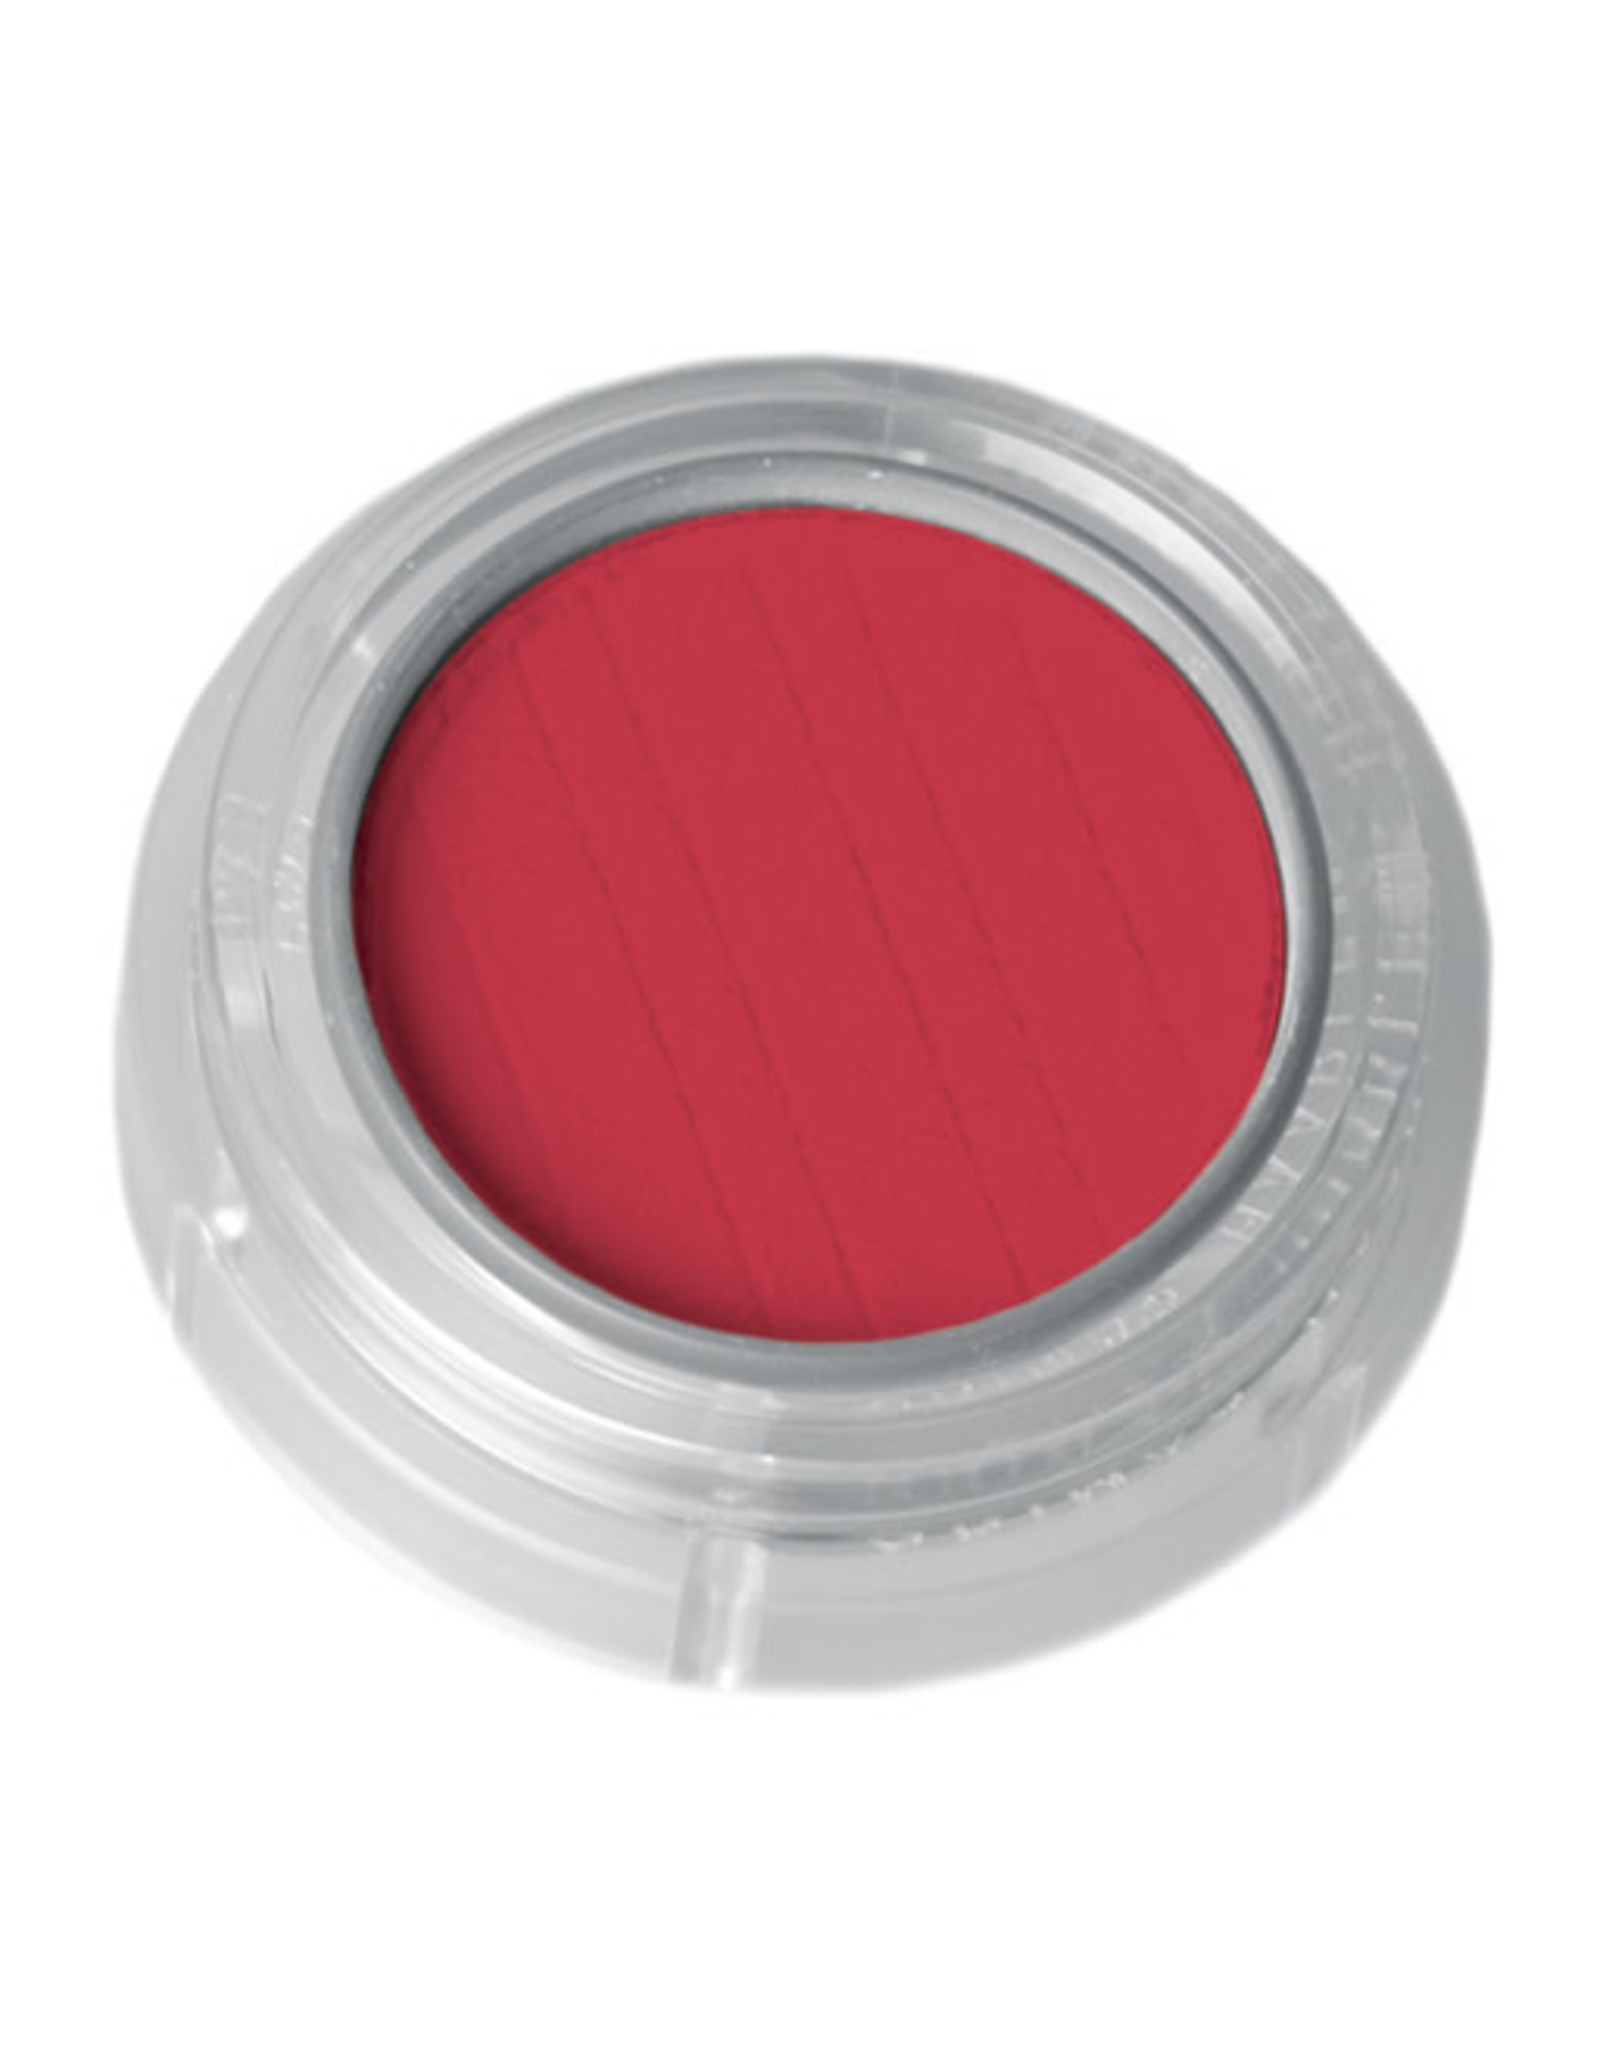 Grimas EYESHADOW/ROUGE 540 Rood A1 (2 g)